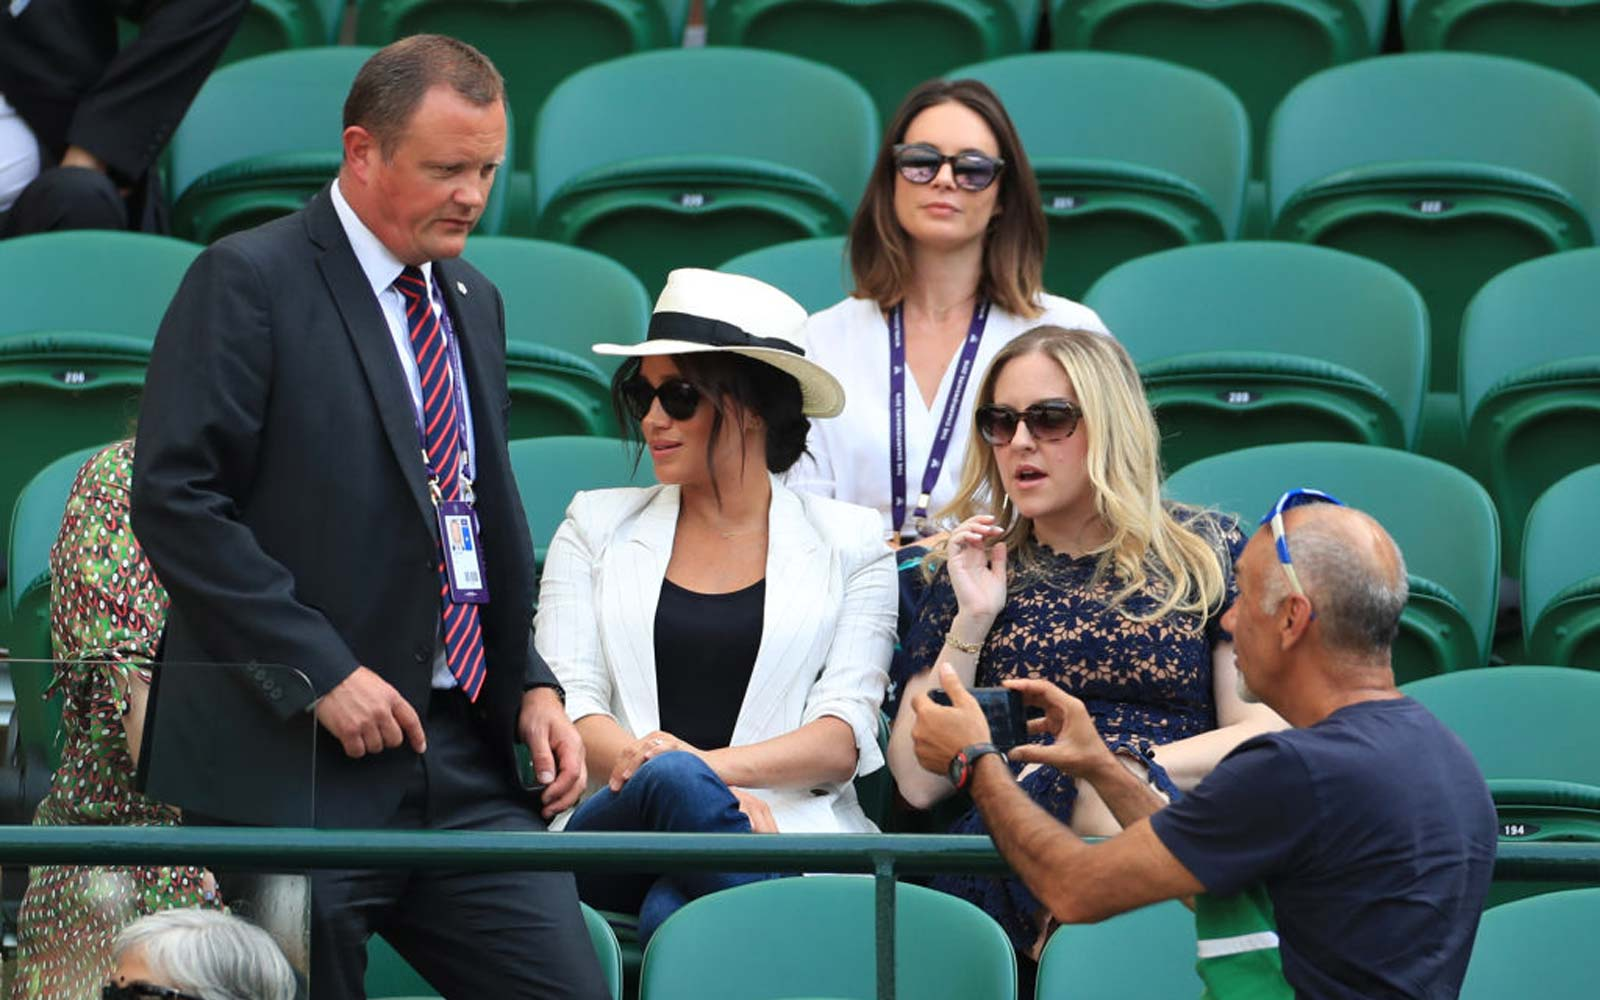 Meghan Markle Went Off-duty to See Friend Serena Williams Play at Wimbledon — and She Banned People From Taking Her Photo